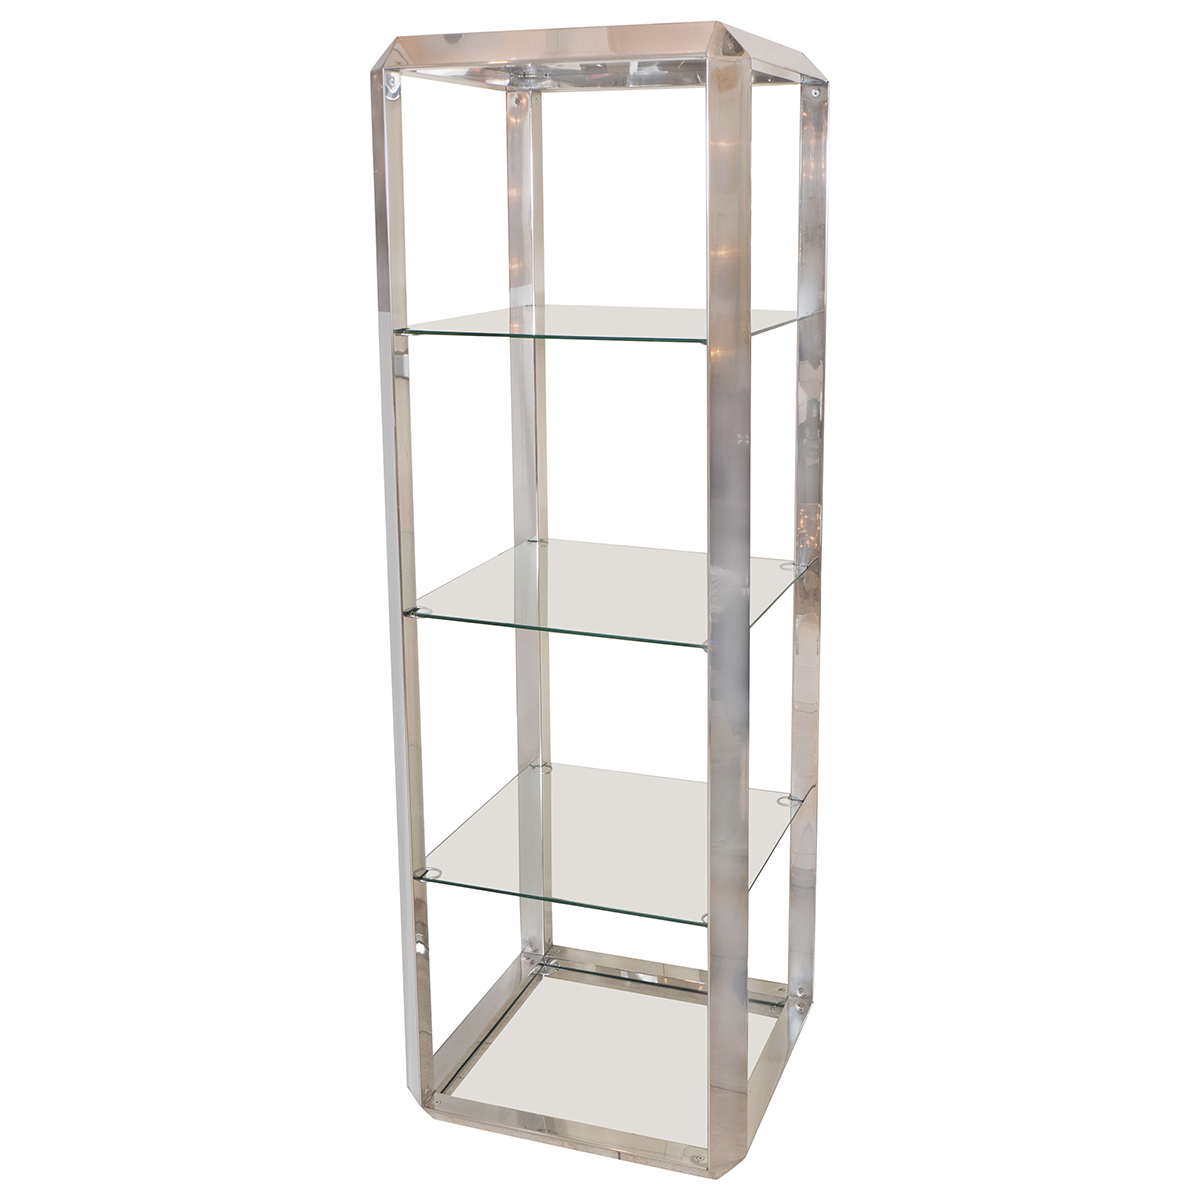 Chrome And Glass Four Shelf Etagere  Etageres  John. Desk Lamps. Roof Awning. Farmhouse Table With Metal Chairs. Ebony Color. Red Sectional. White River Granite. Curtains For Bay Windows. Hexagon Tile Bathroom Floor